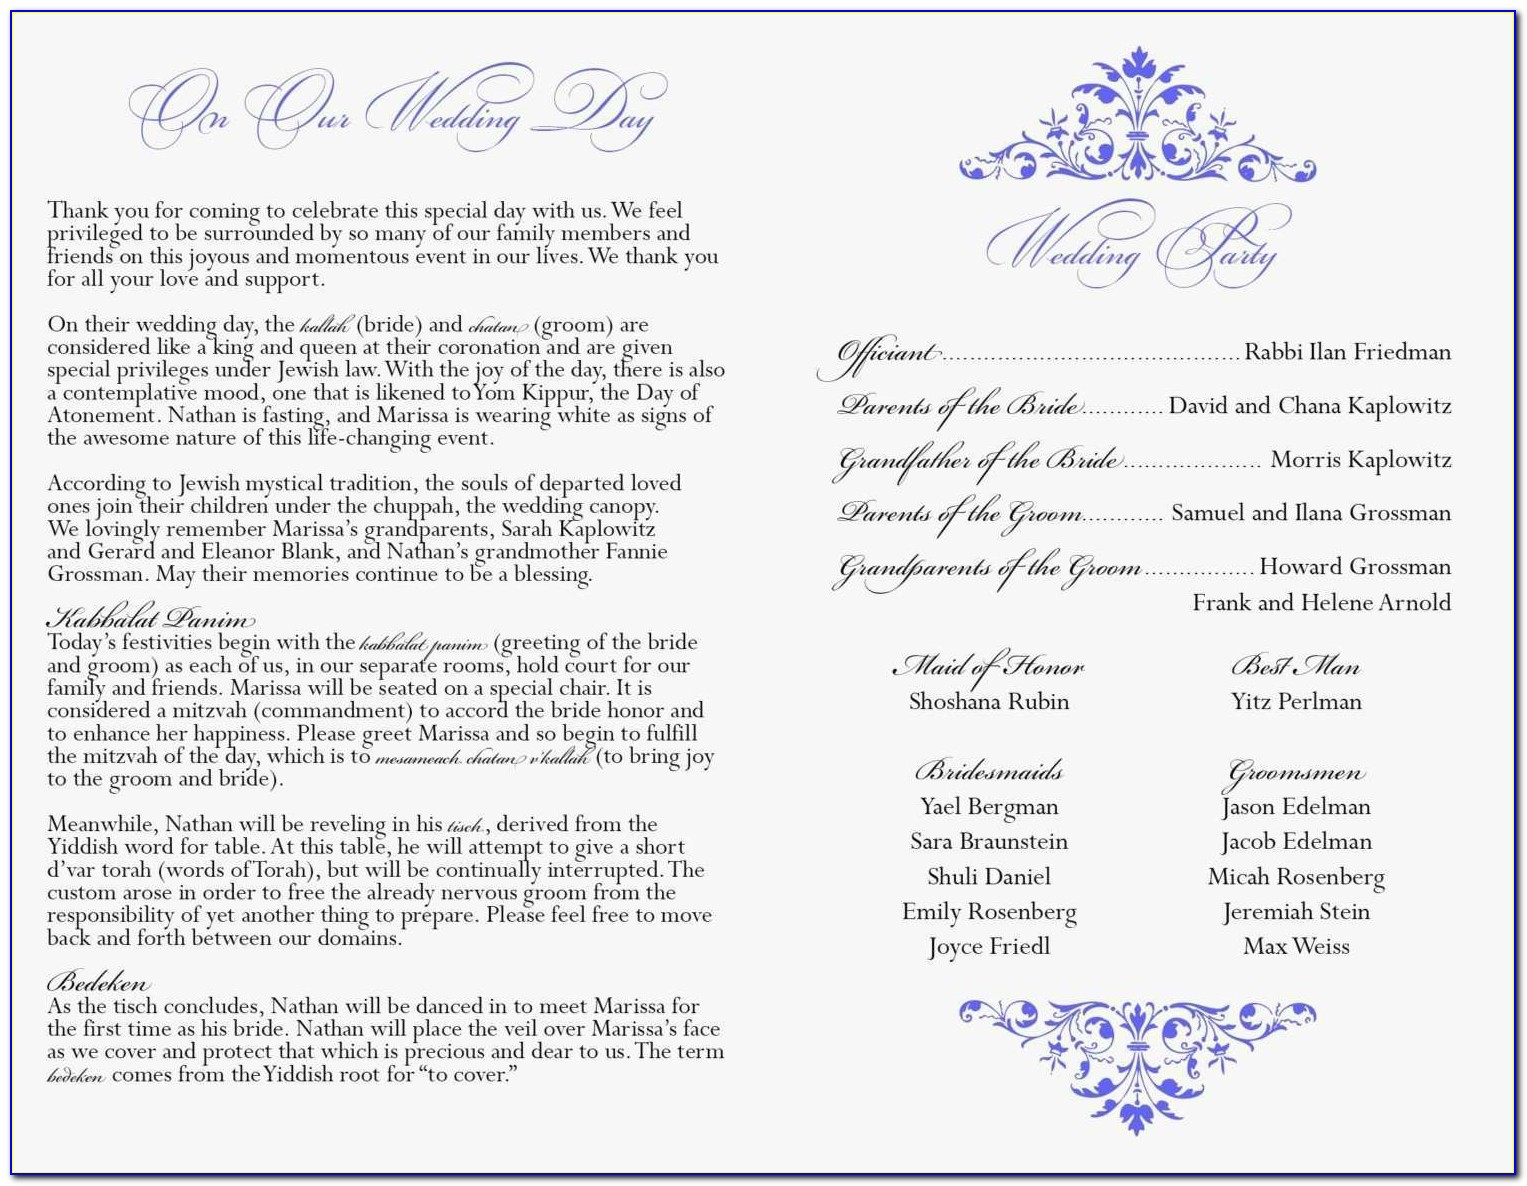 Church Bulletin Template Free Elegant Free Printable Church Bulletin Templates Leoncapers